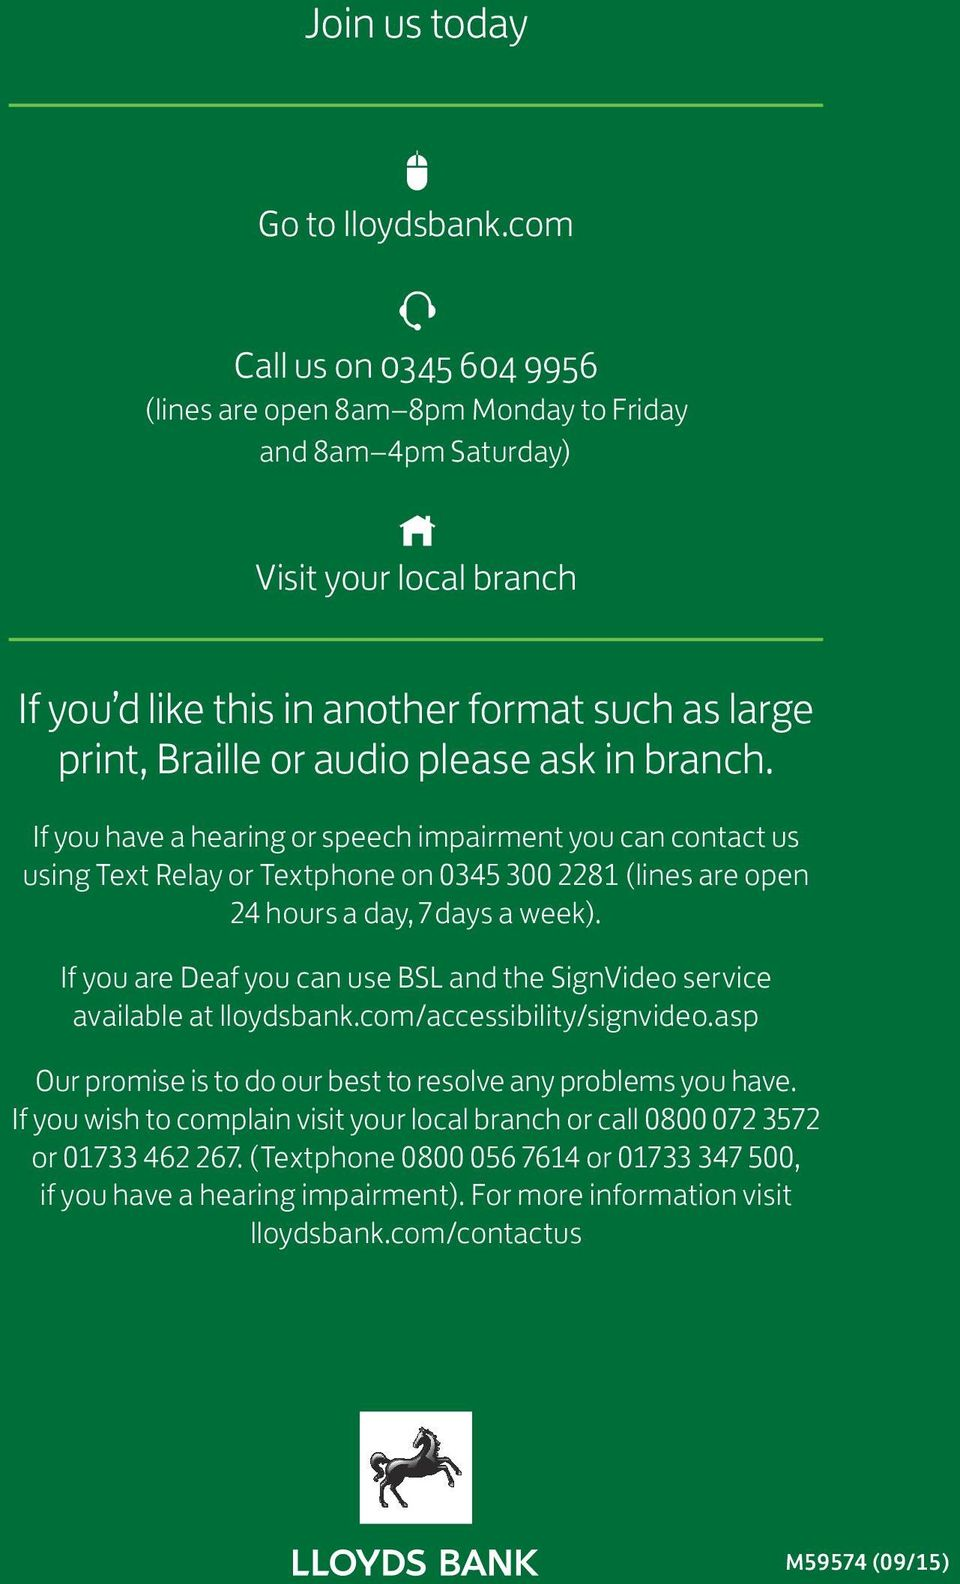 please ask in branch. If you have a hearing or speech impairment you can contact us using Text Relay or Textphone on 0345 300 2281 (lines are open 24 hours a day, 7 days a week).